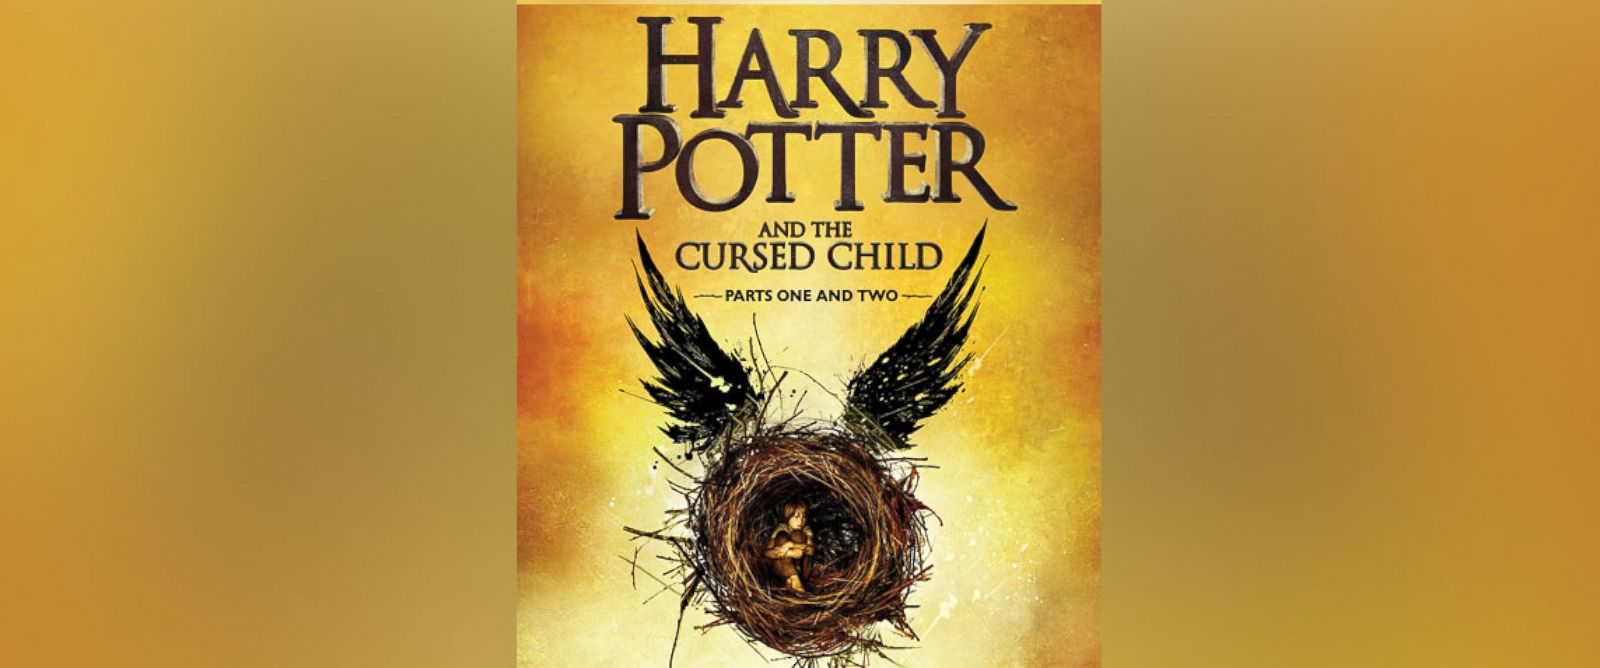 Inside Look At Harry Potter And The Cursed Child Abc News border=